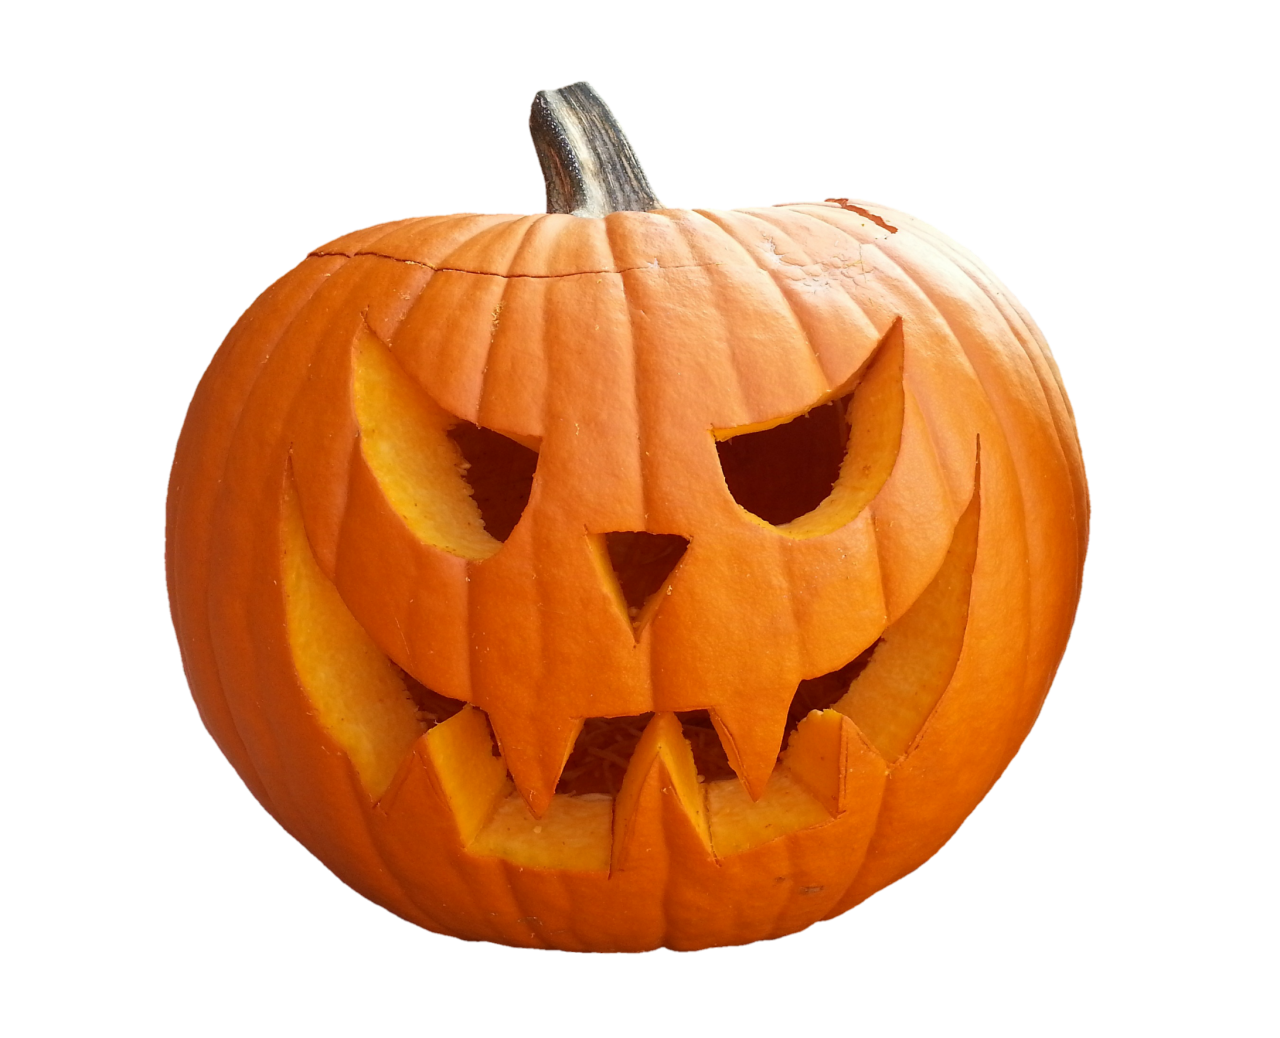 Halloween Pumpkin PNG Image - PurePNG | Free transparent CC0 PNG Image  Library